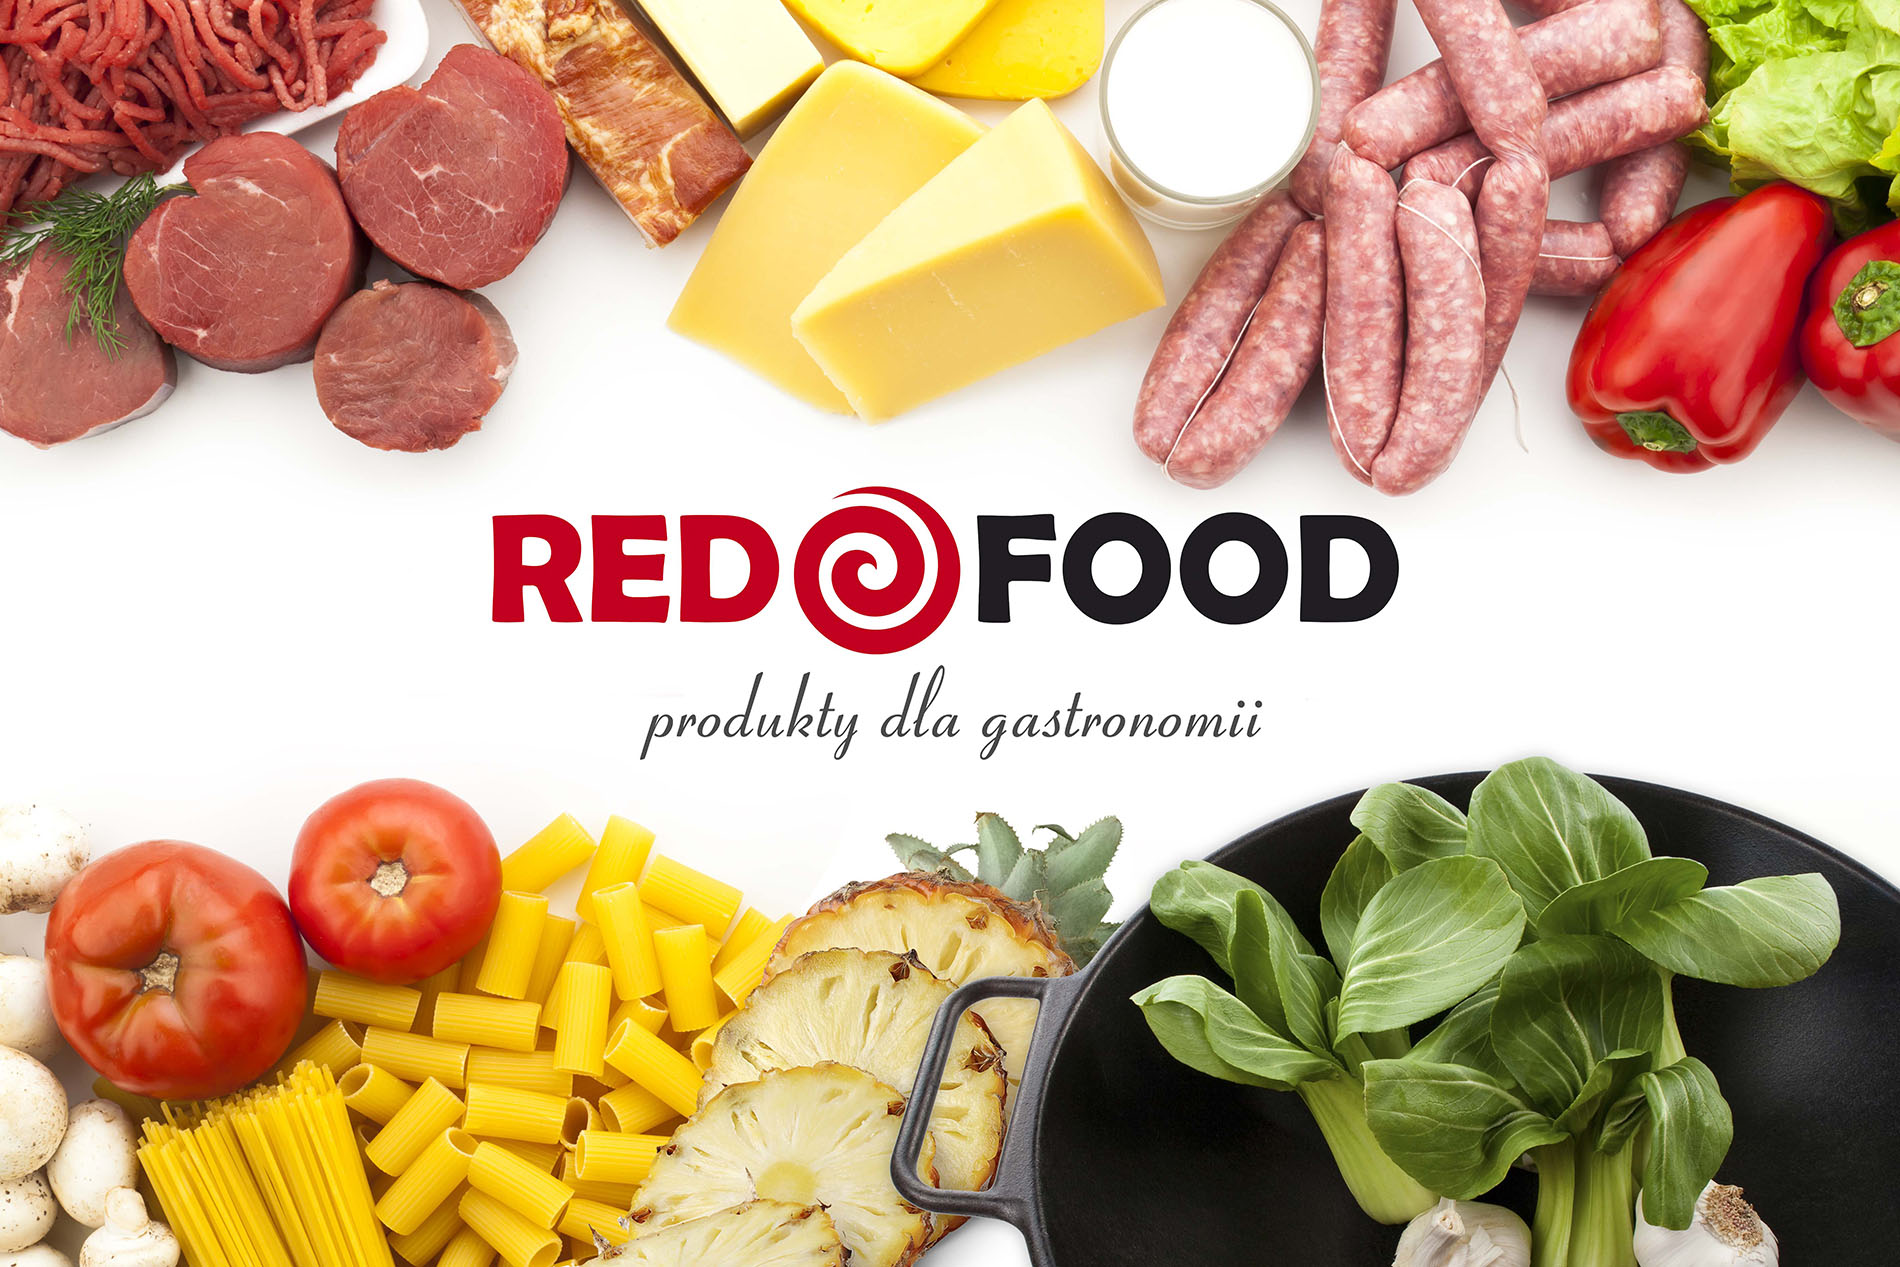 redfood